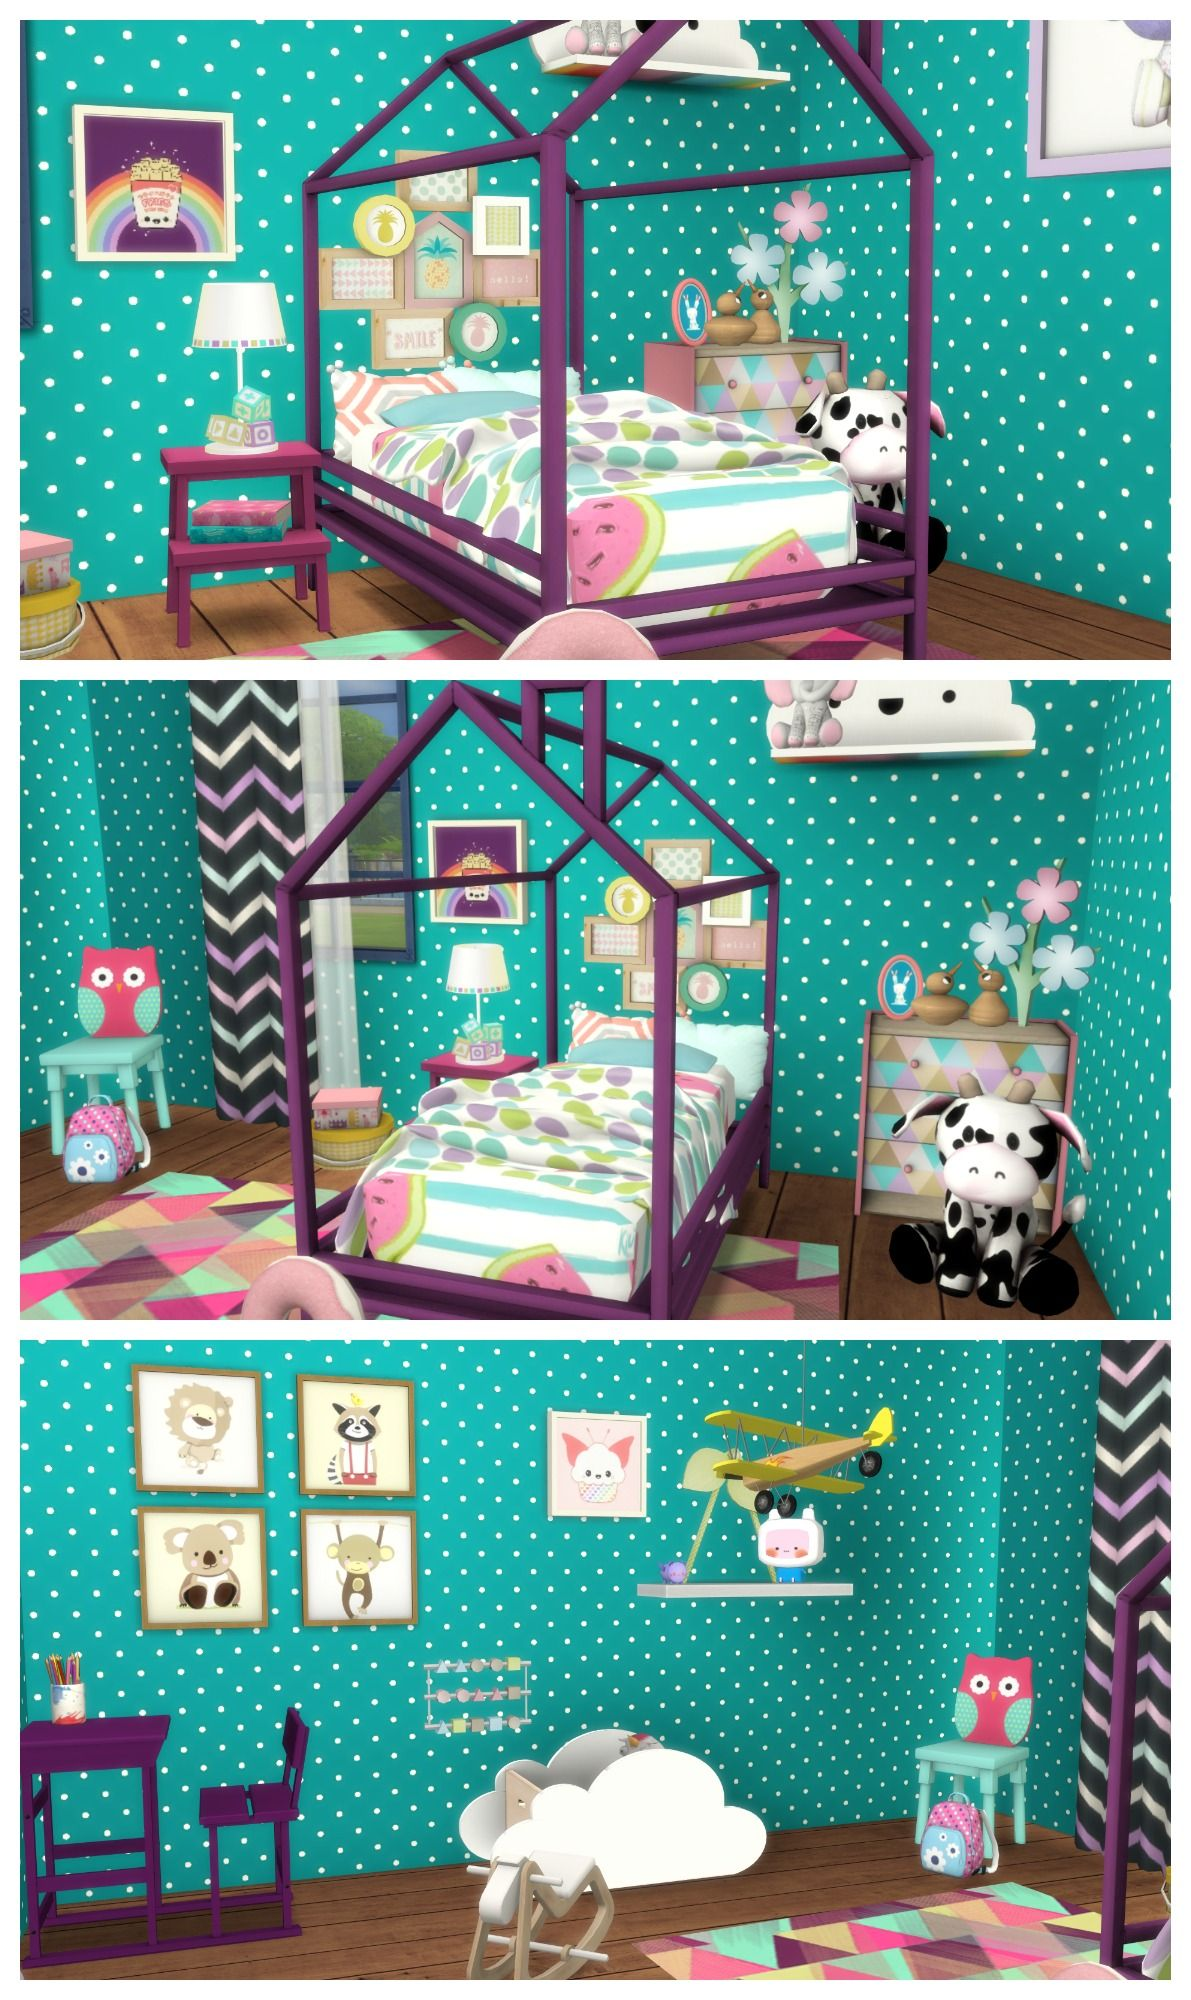 SIMS 4 TODDLER BEDROOM Room Build CC List Sims